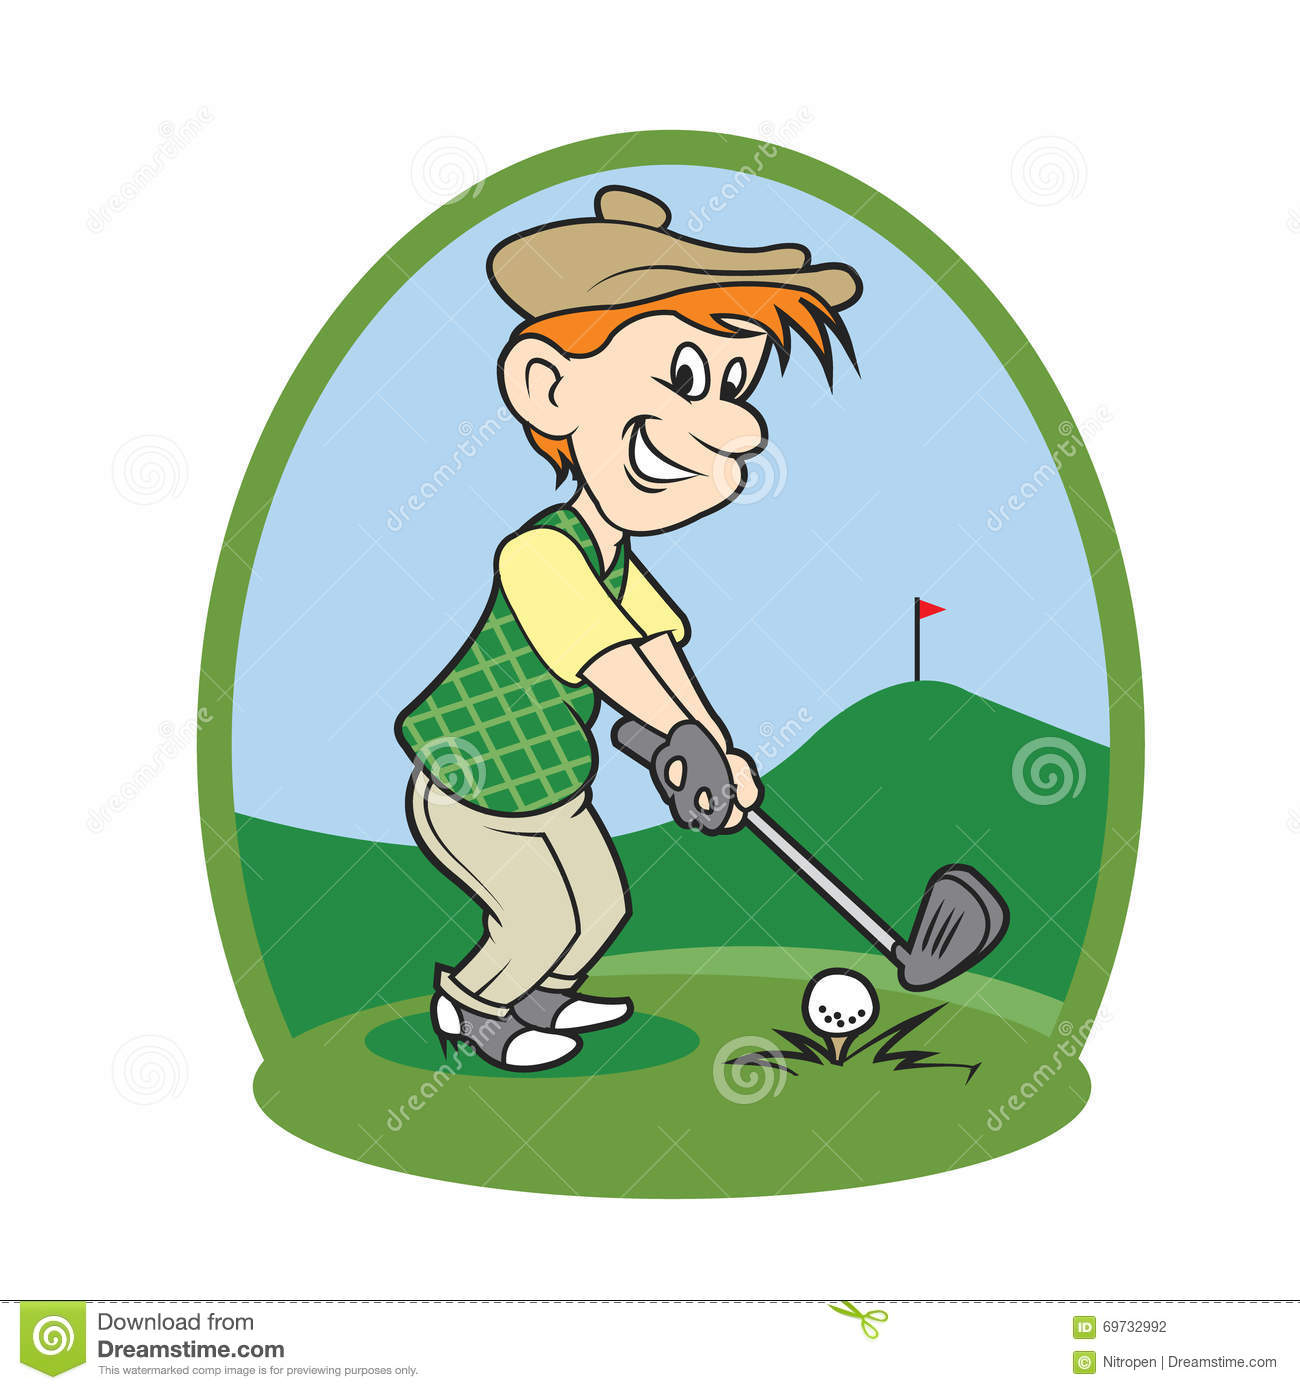 boy cartoon golf player stock vector image 69732992 gopher clip art free golf clipart images